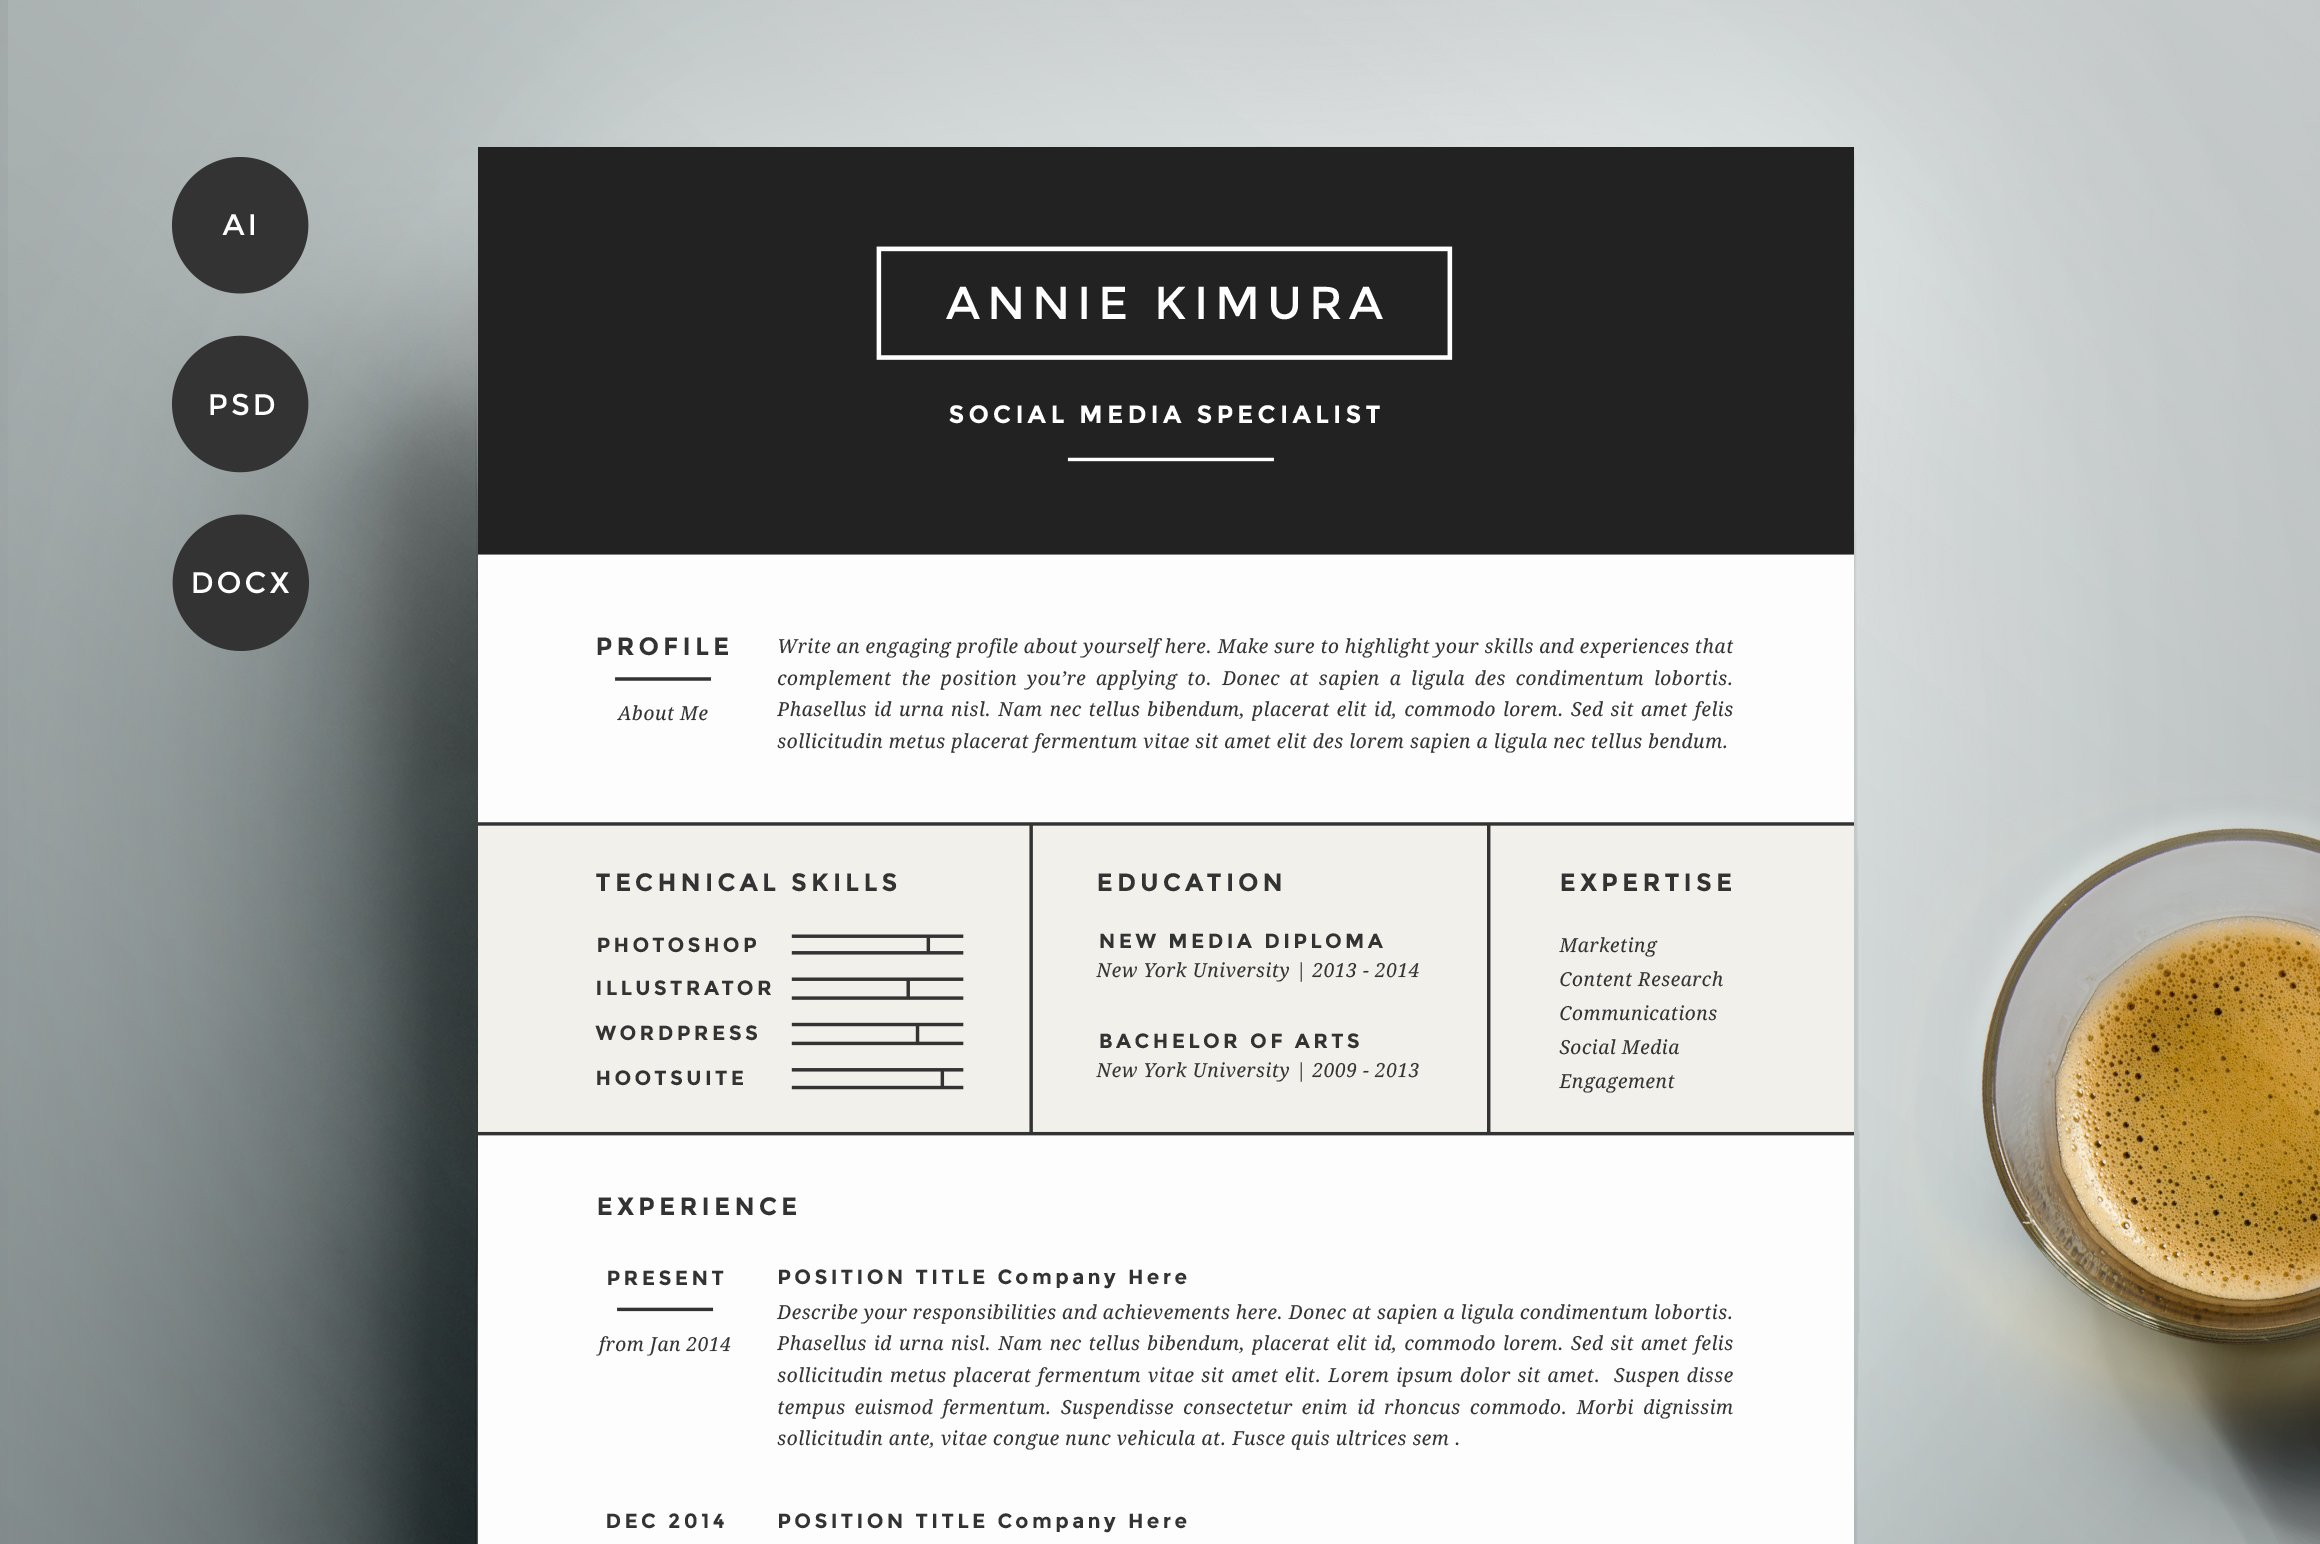 Outside Sales Rep Resume Resume Template  Pack  Cv Template  Resume Templates  Creative  Inventory Resume Pdf with Resume Paper Walmart Pdf Resume Template  Pack  Cv Template  Resume Templates  Creative Market Sample Resume For Secretary